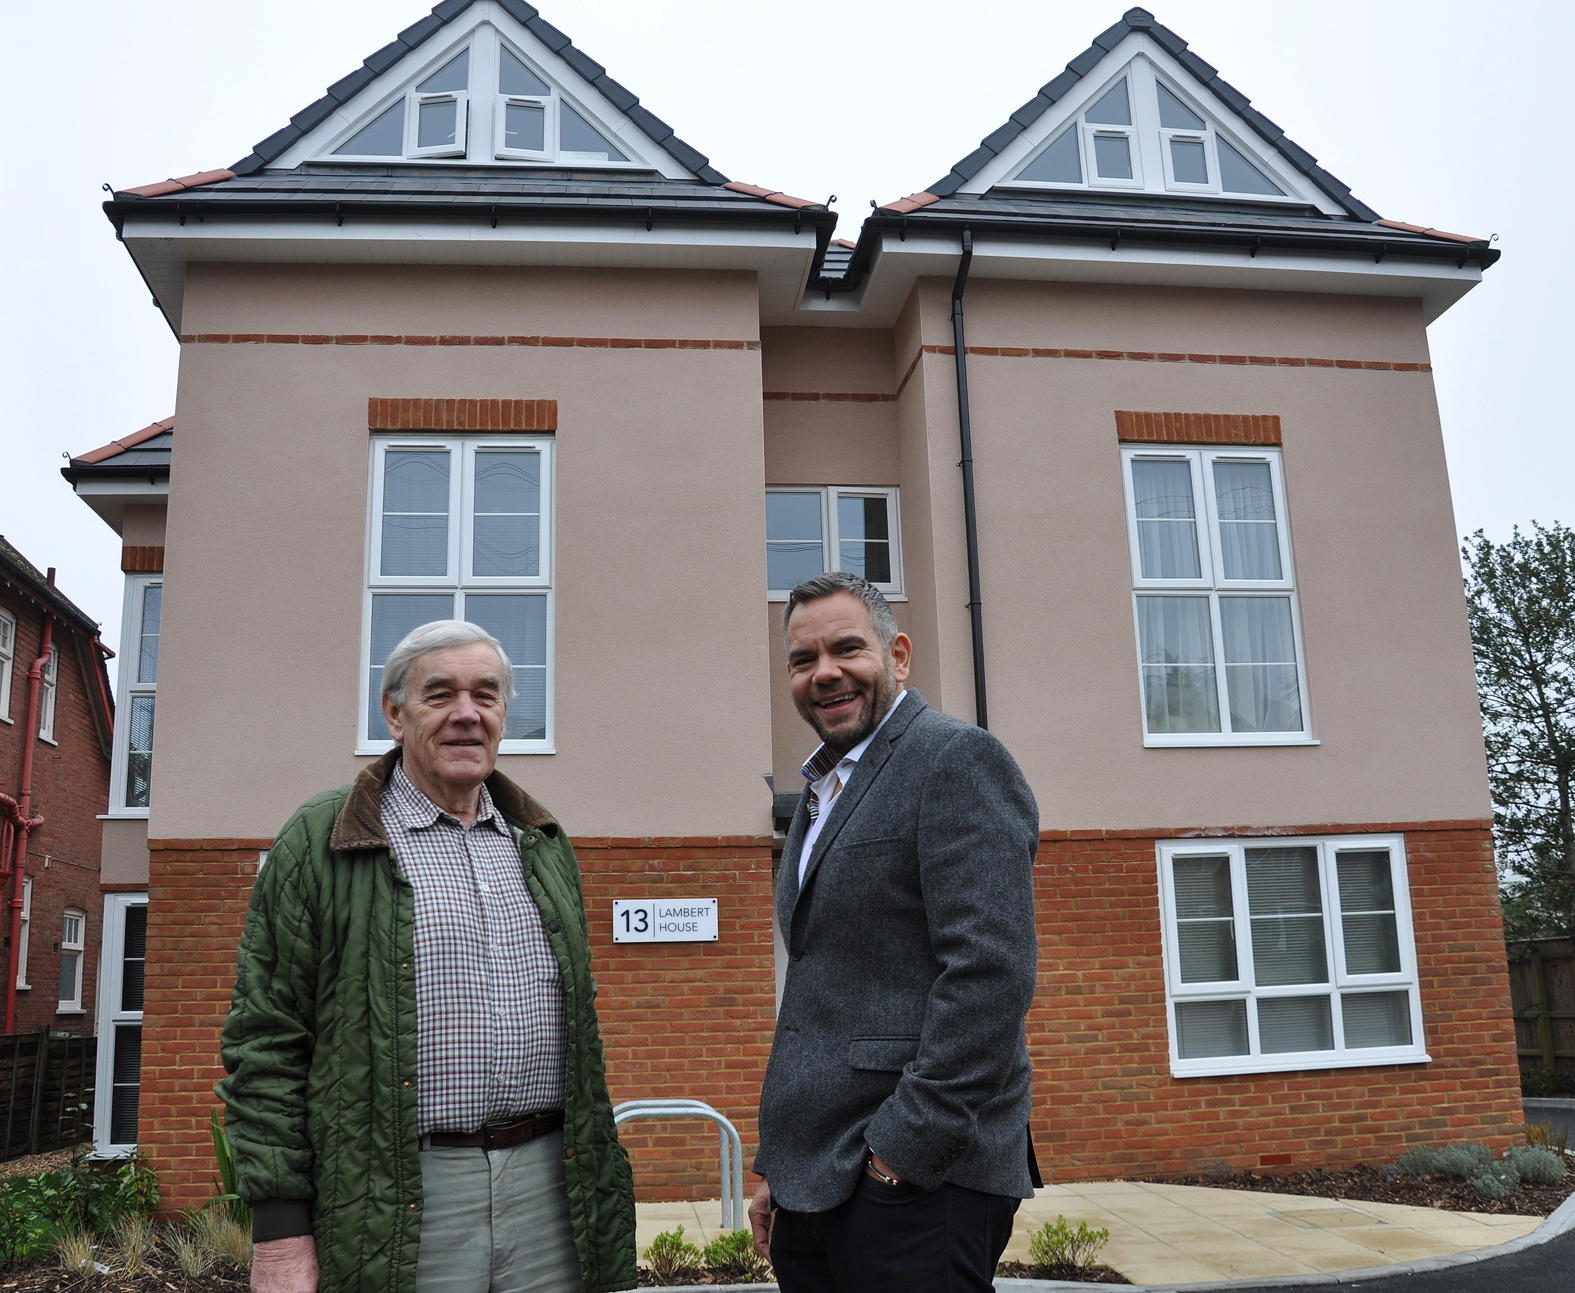 Colin Lambert with Stdeve Wells of DWP Housing Partnership